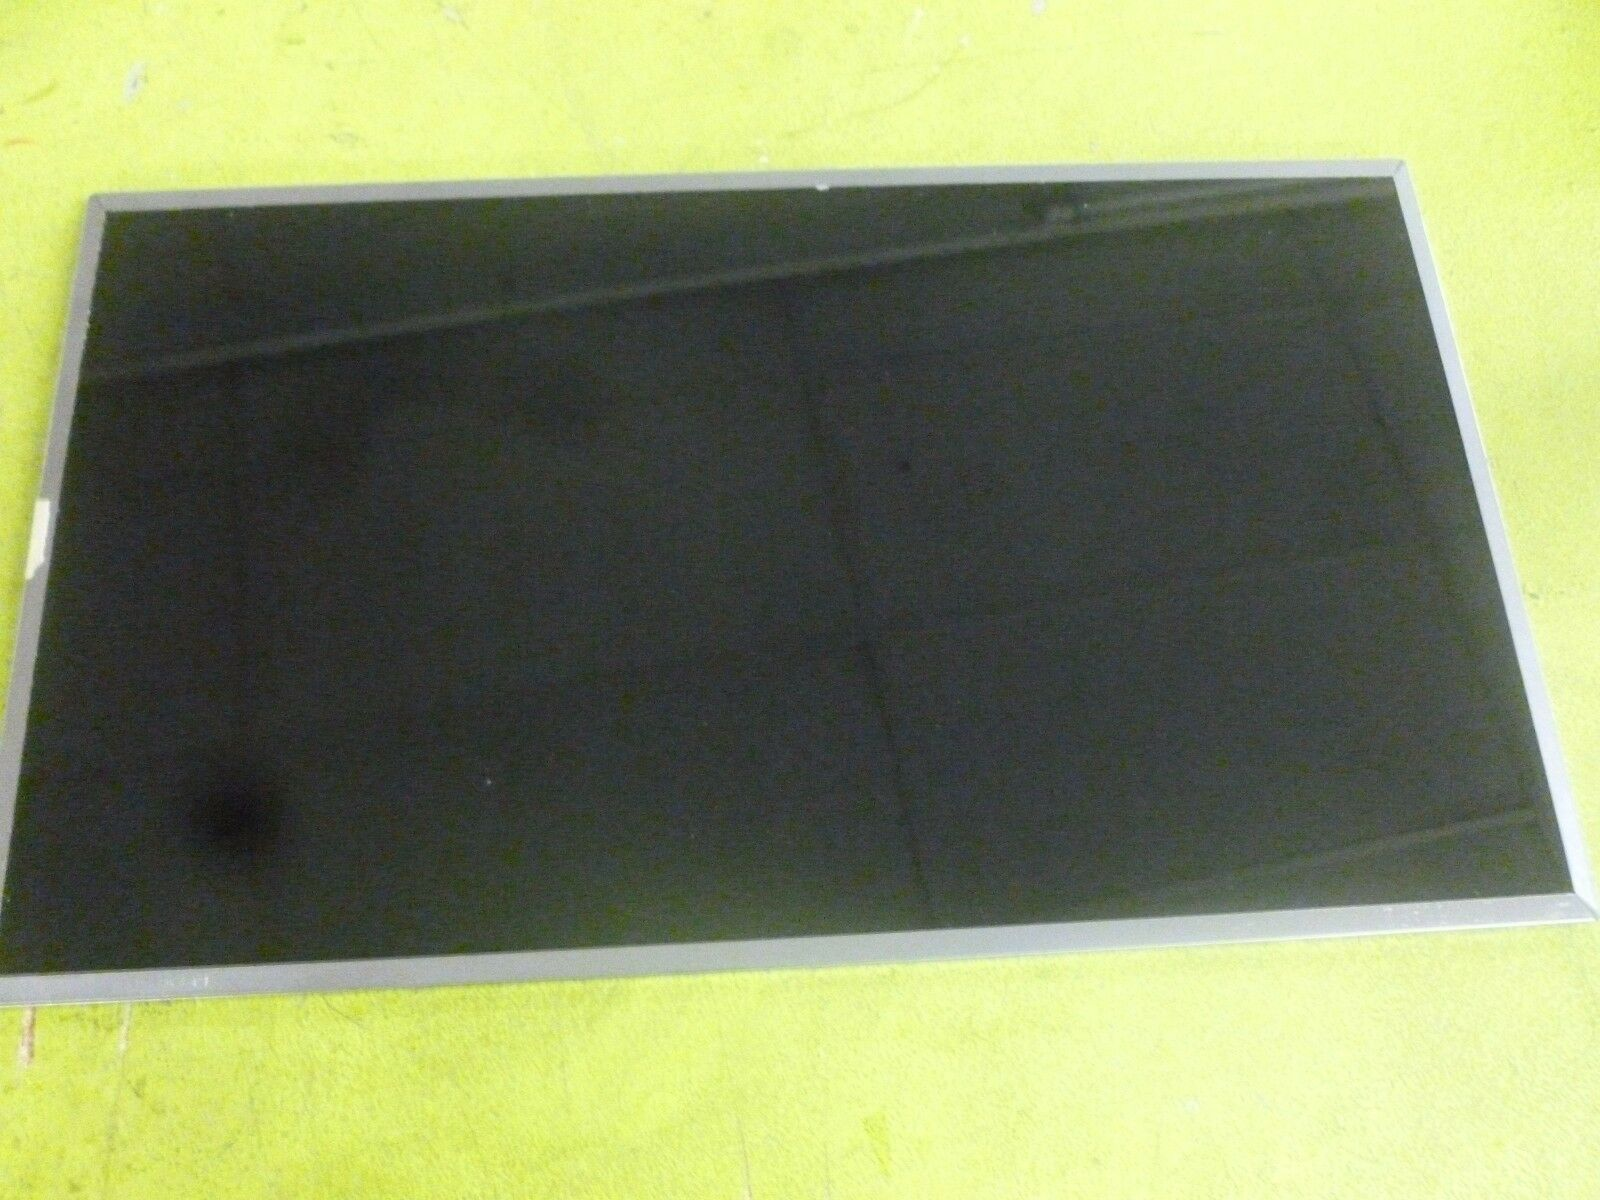 New Replacement for Lenovo G500 G505 G510 LCD Front Frame Bezel 90202720 Frosted